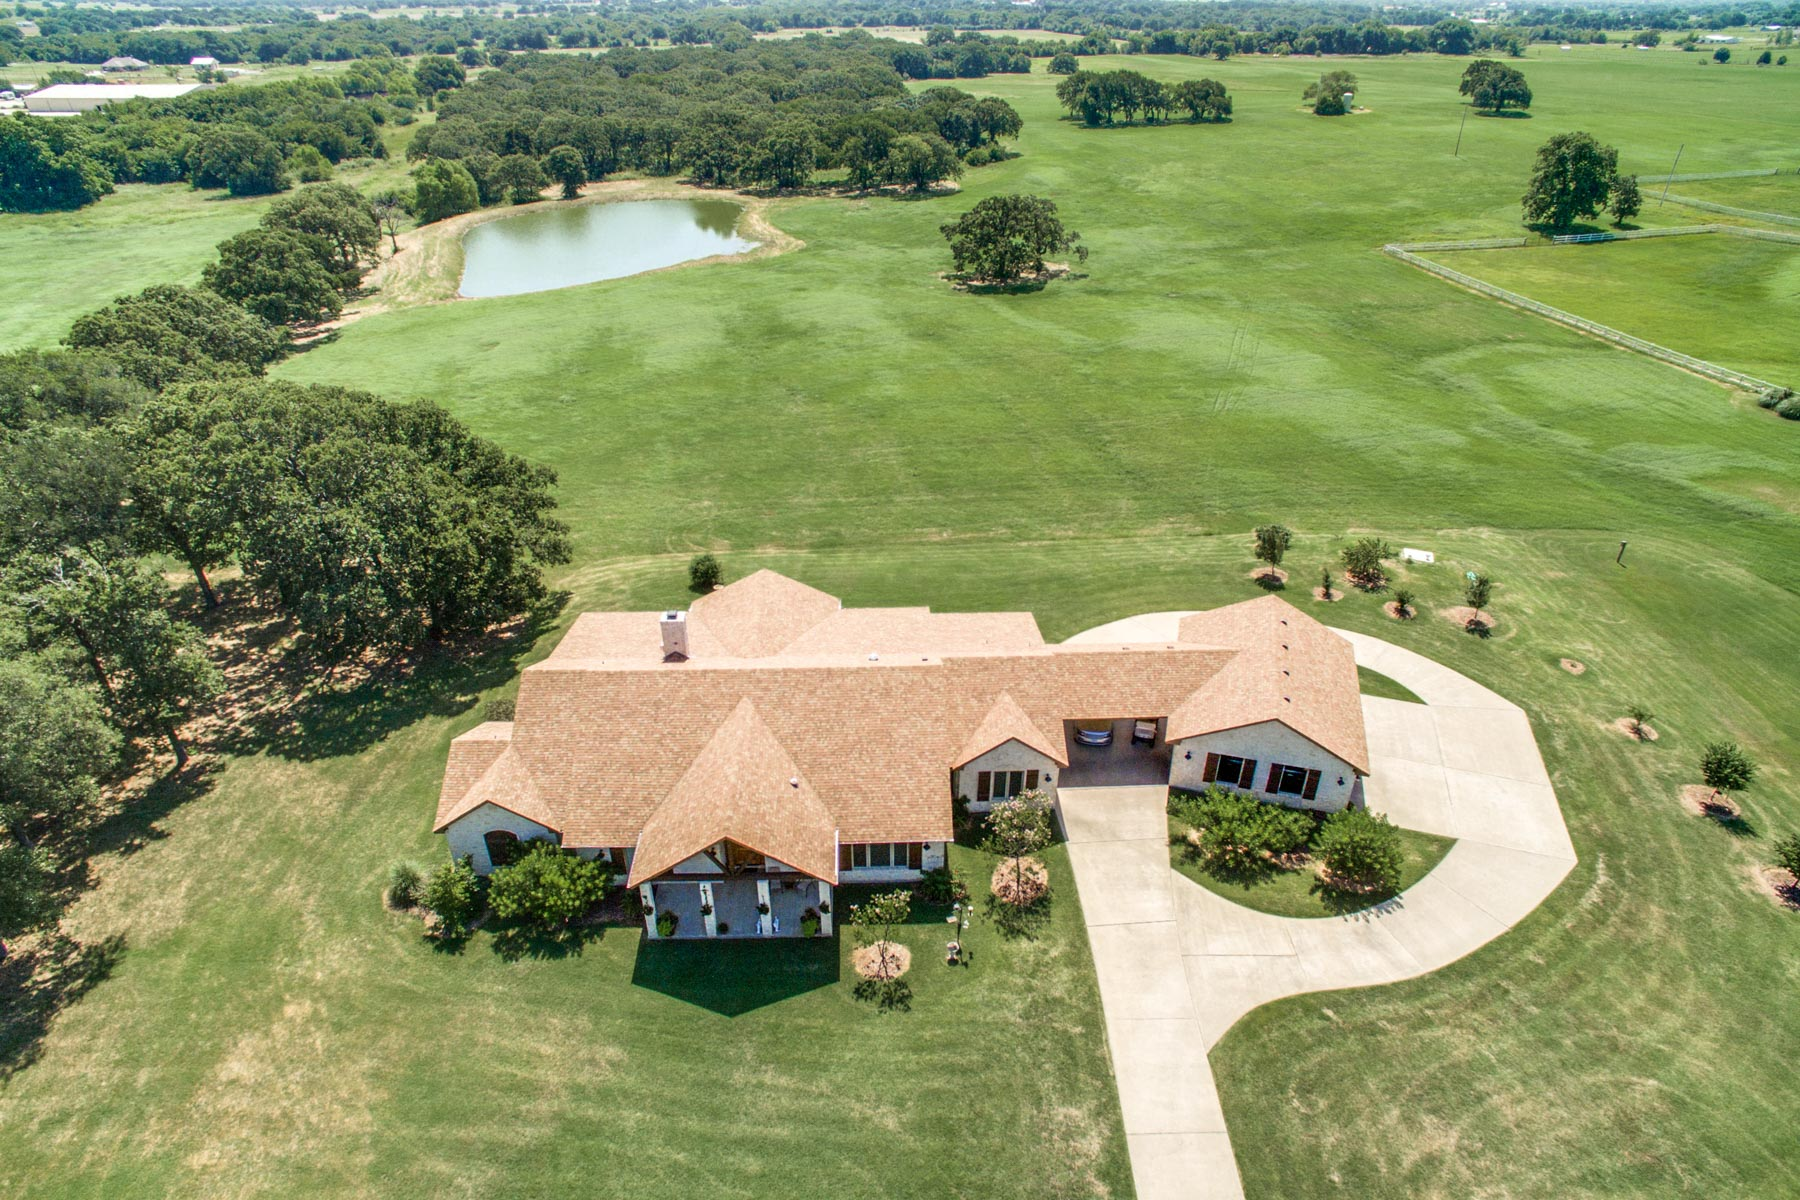 Fattoria / ranch / campagna per Vendita alle ore 166 Acre Private Country Estate in Denton County 9890 Cole Road Pilot Point, Texas, 76258 Stati Uniti